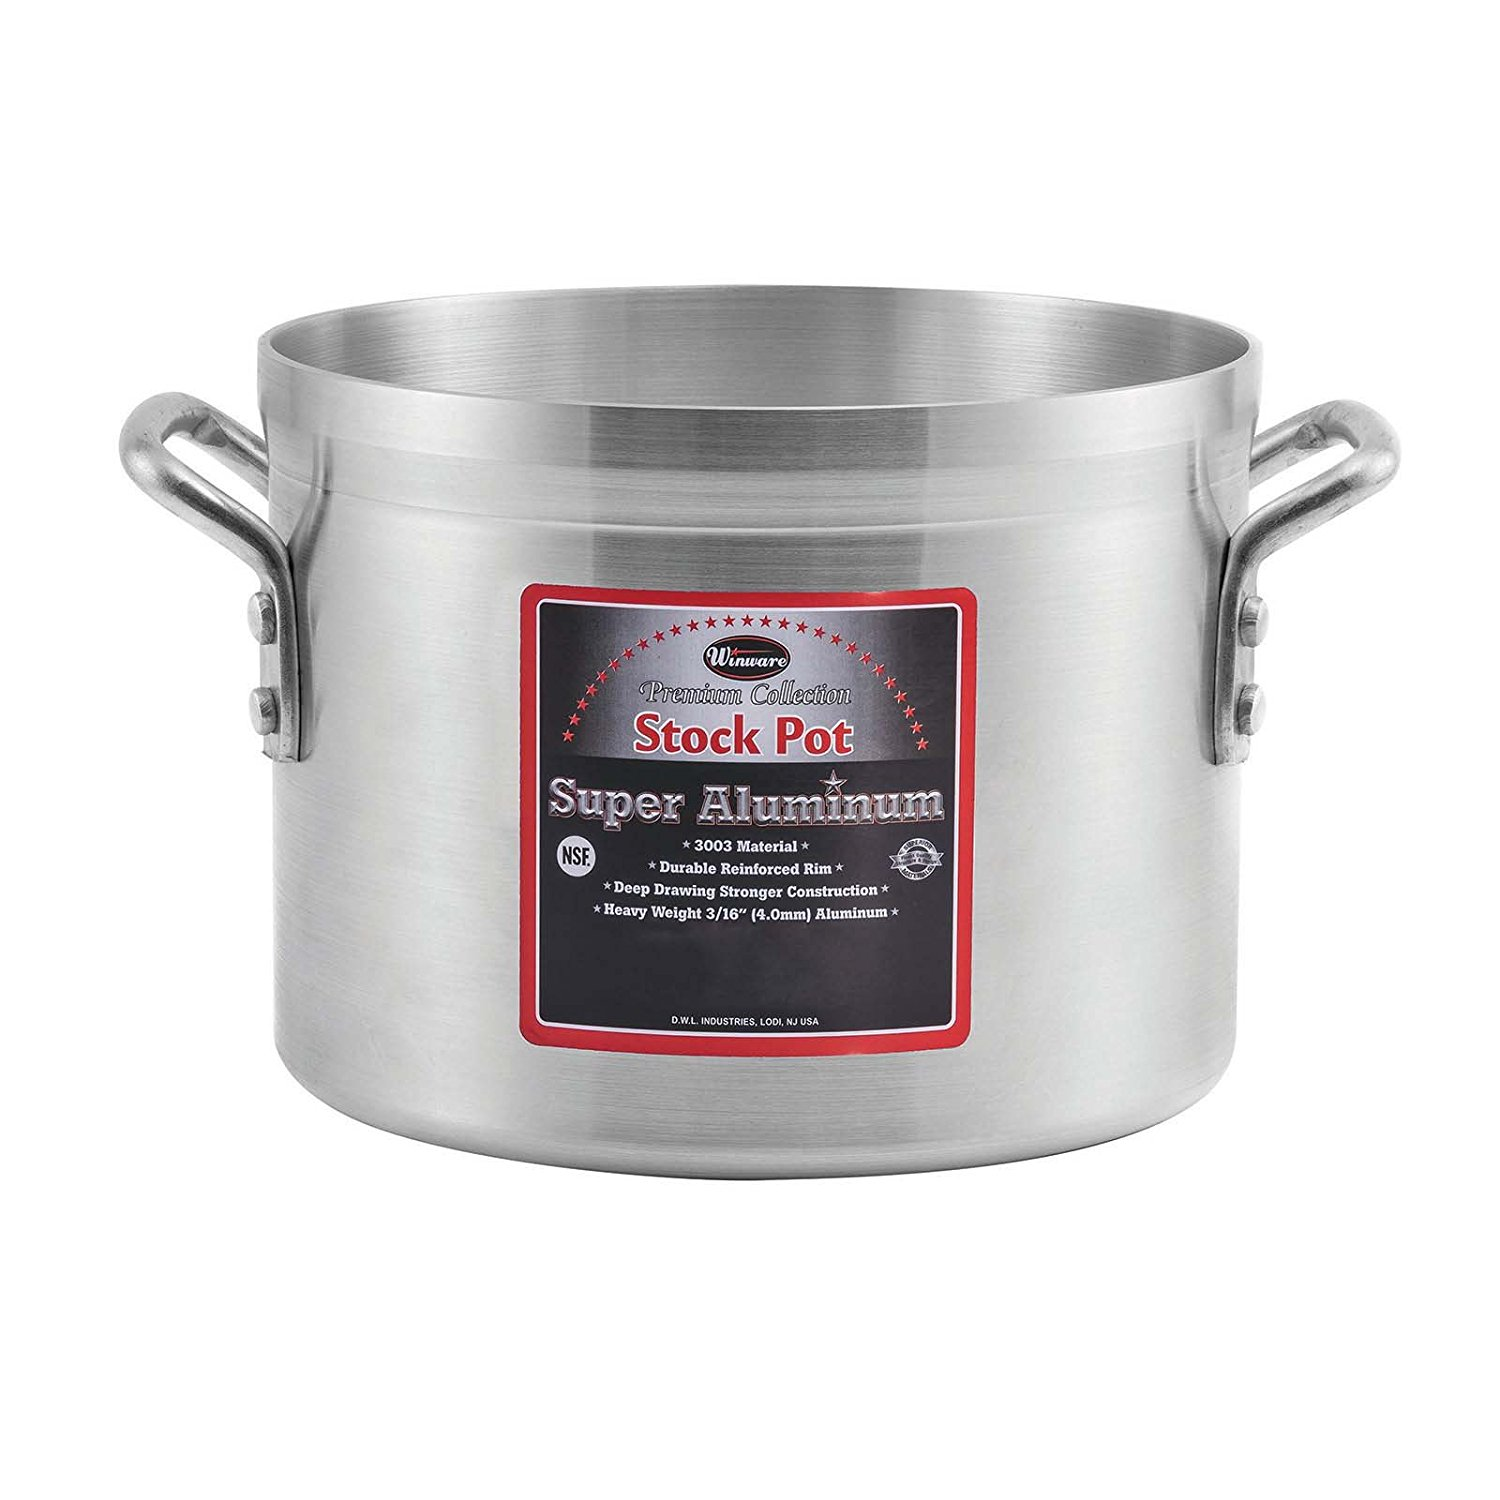 Winco AXSI-10, 10-Quart Induction Ready Aluminum Stock Pot with 0.1-Inch Stainless Steel Bottom